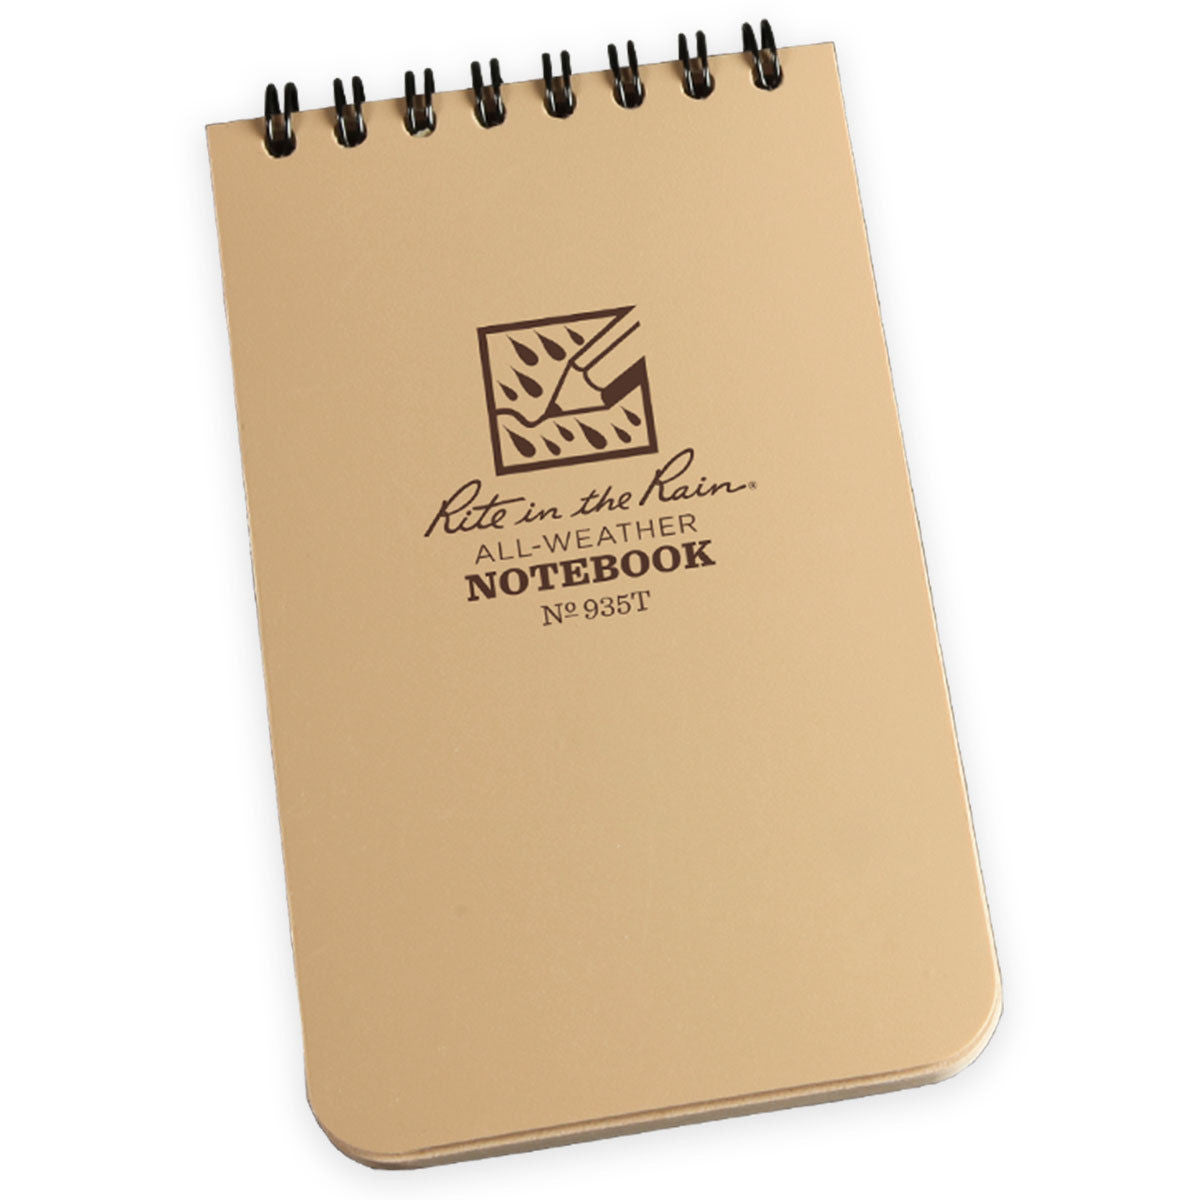 Rite in the Rain All Weather Notebook No.946T - Trailblazer Outdoors, Pickering